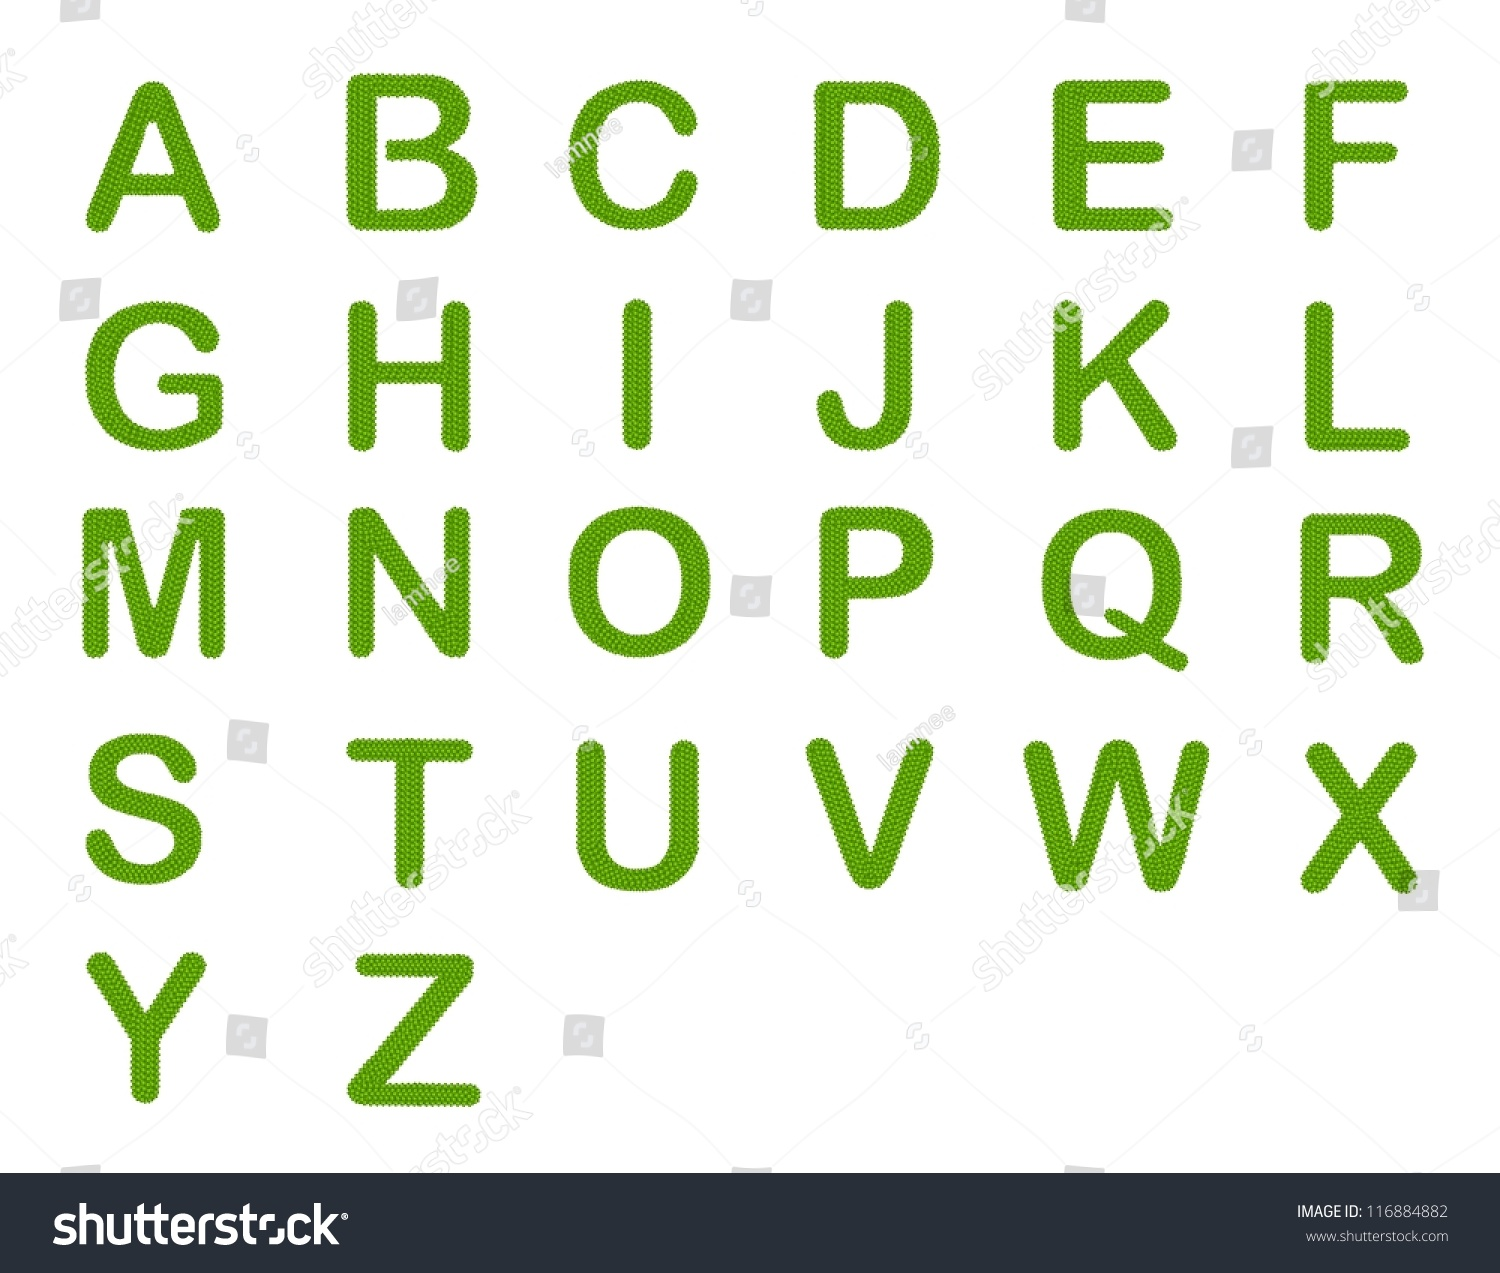 Letter A Z Alphabet Letters Made Of Four Leaf Clover Isolated On White Background